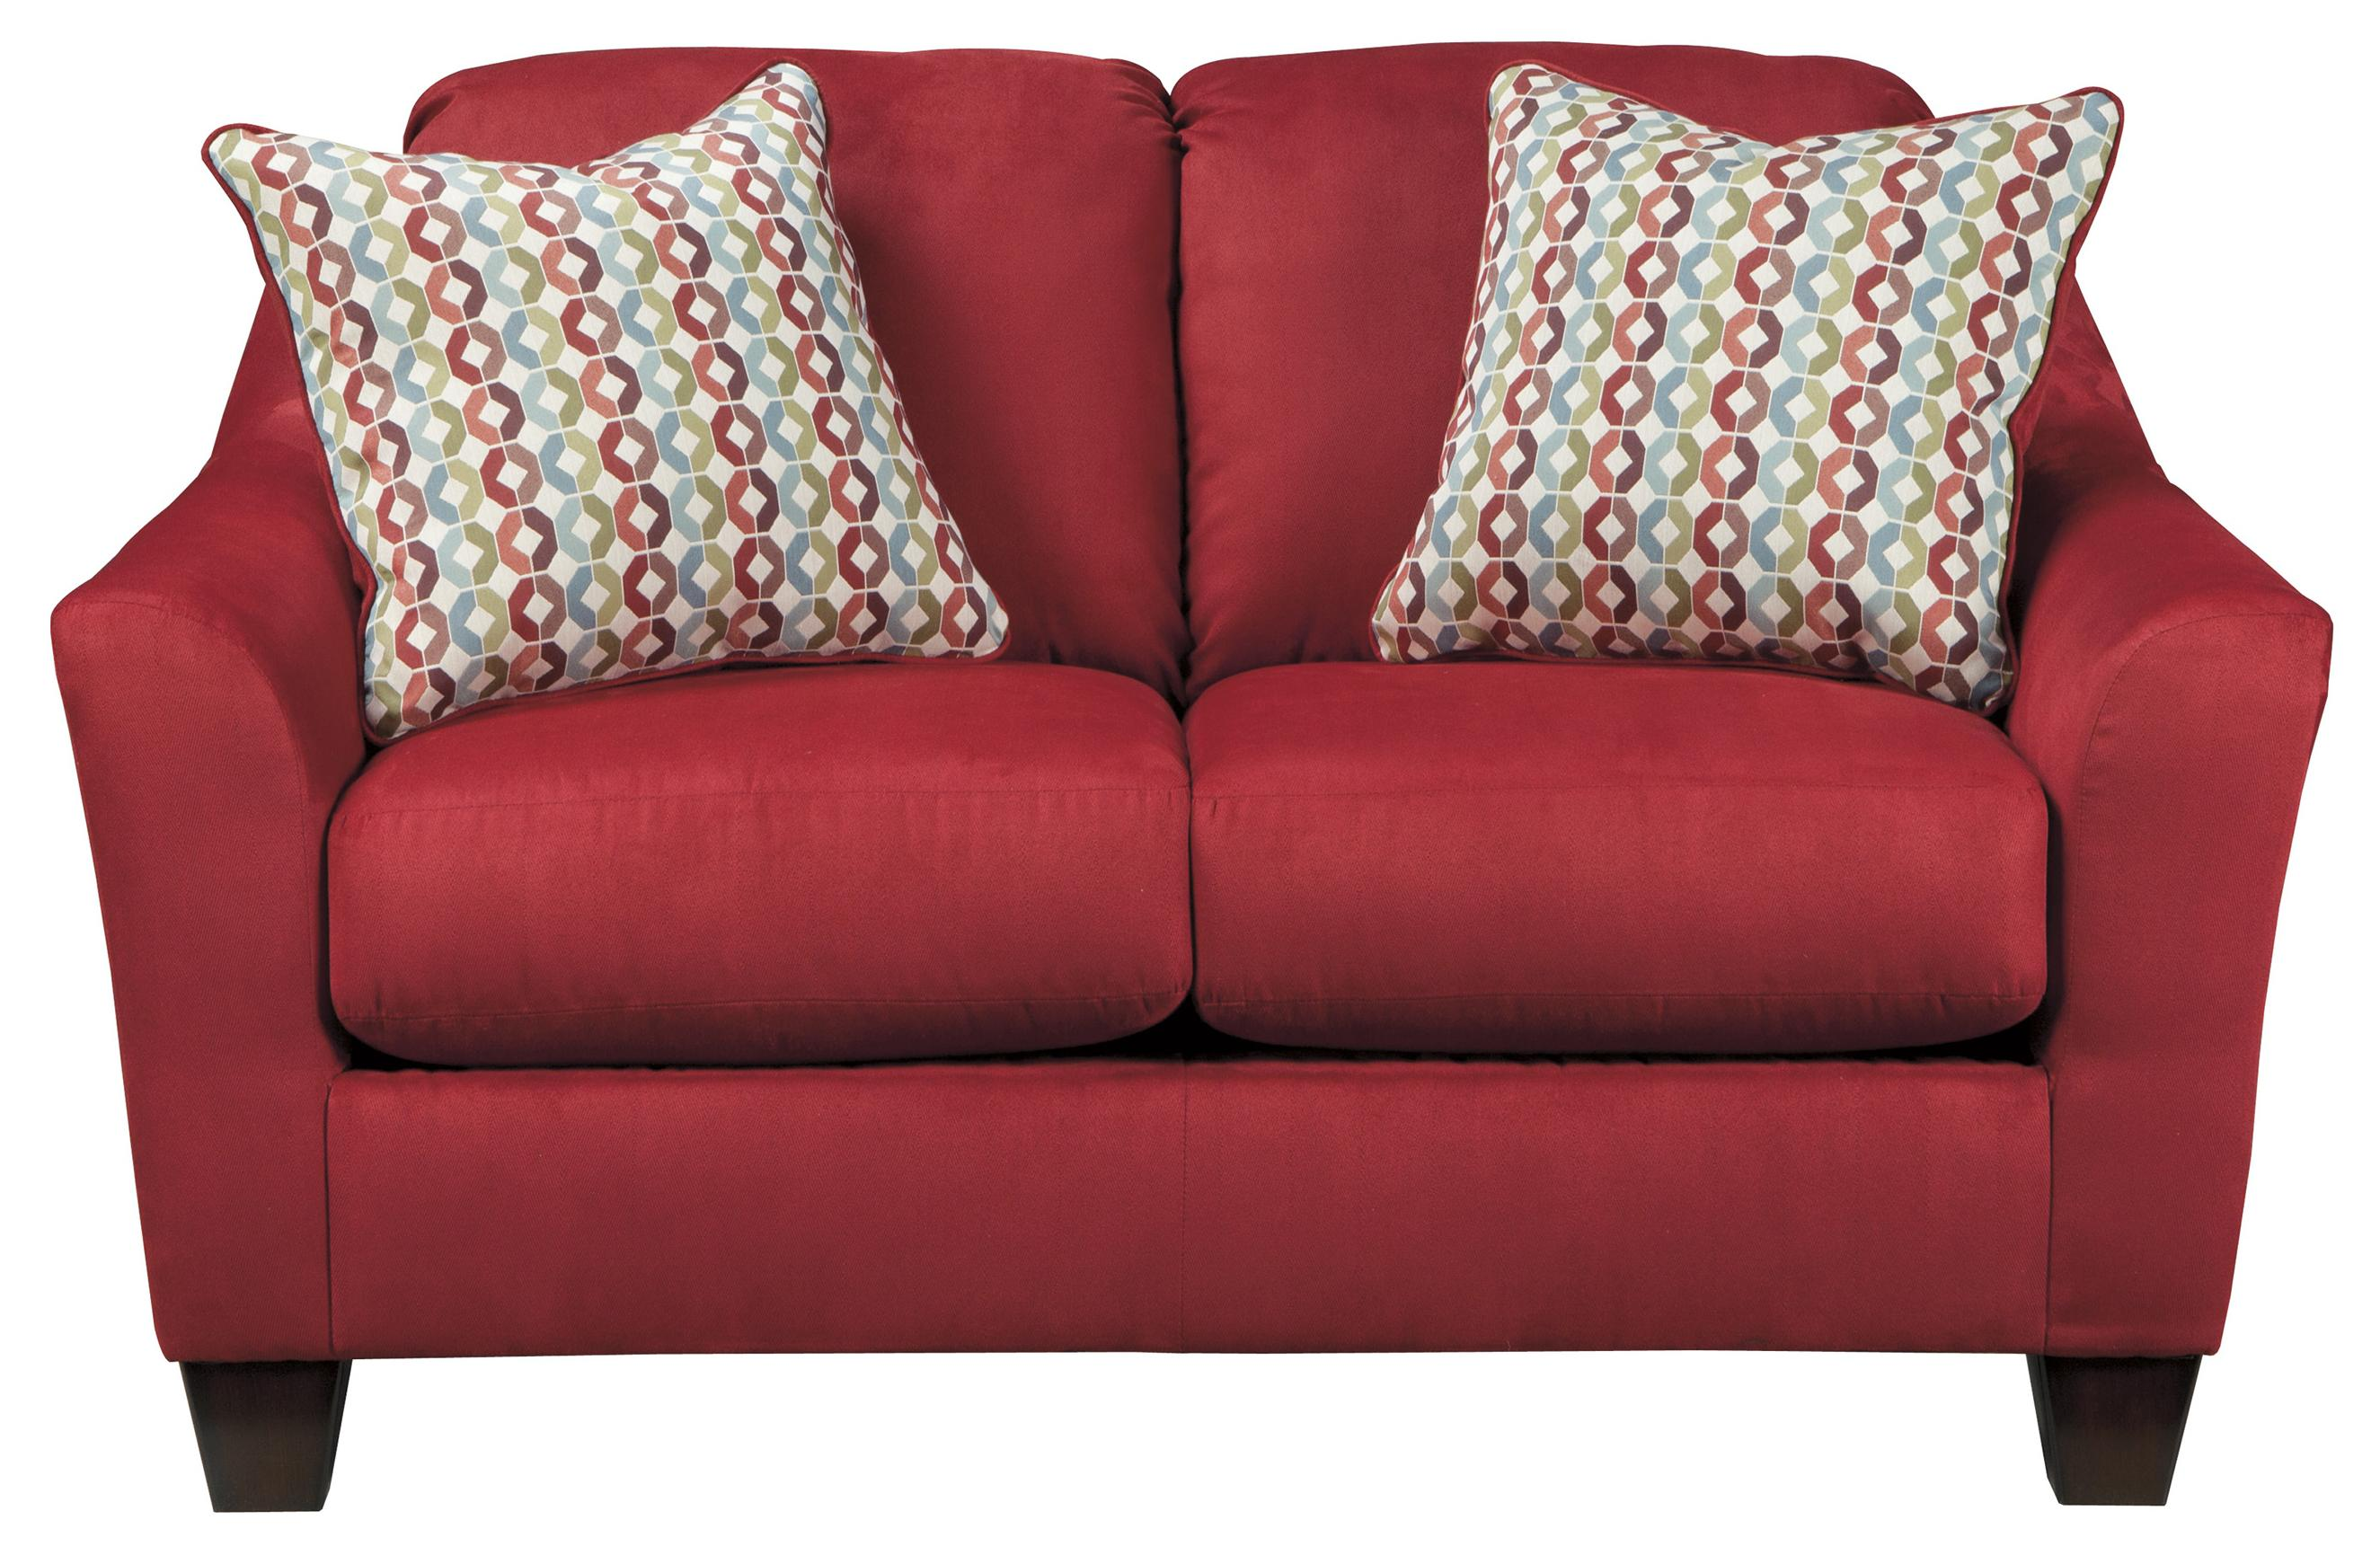 Signature Design by Ashley Hannin - Spice Loveseat - Item Number: 9580135